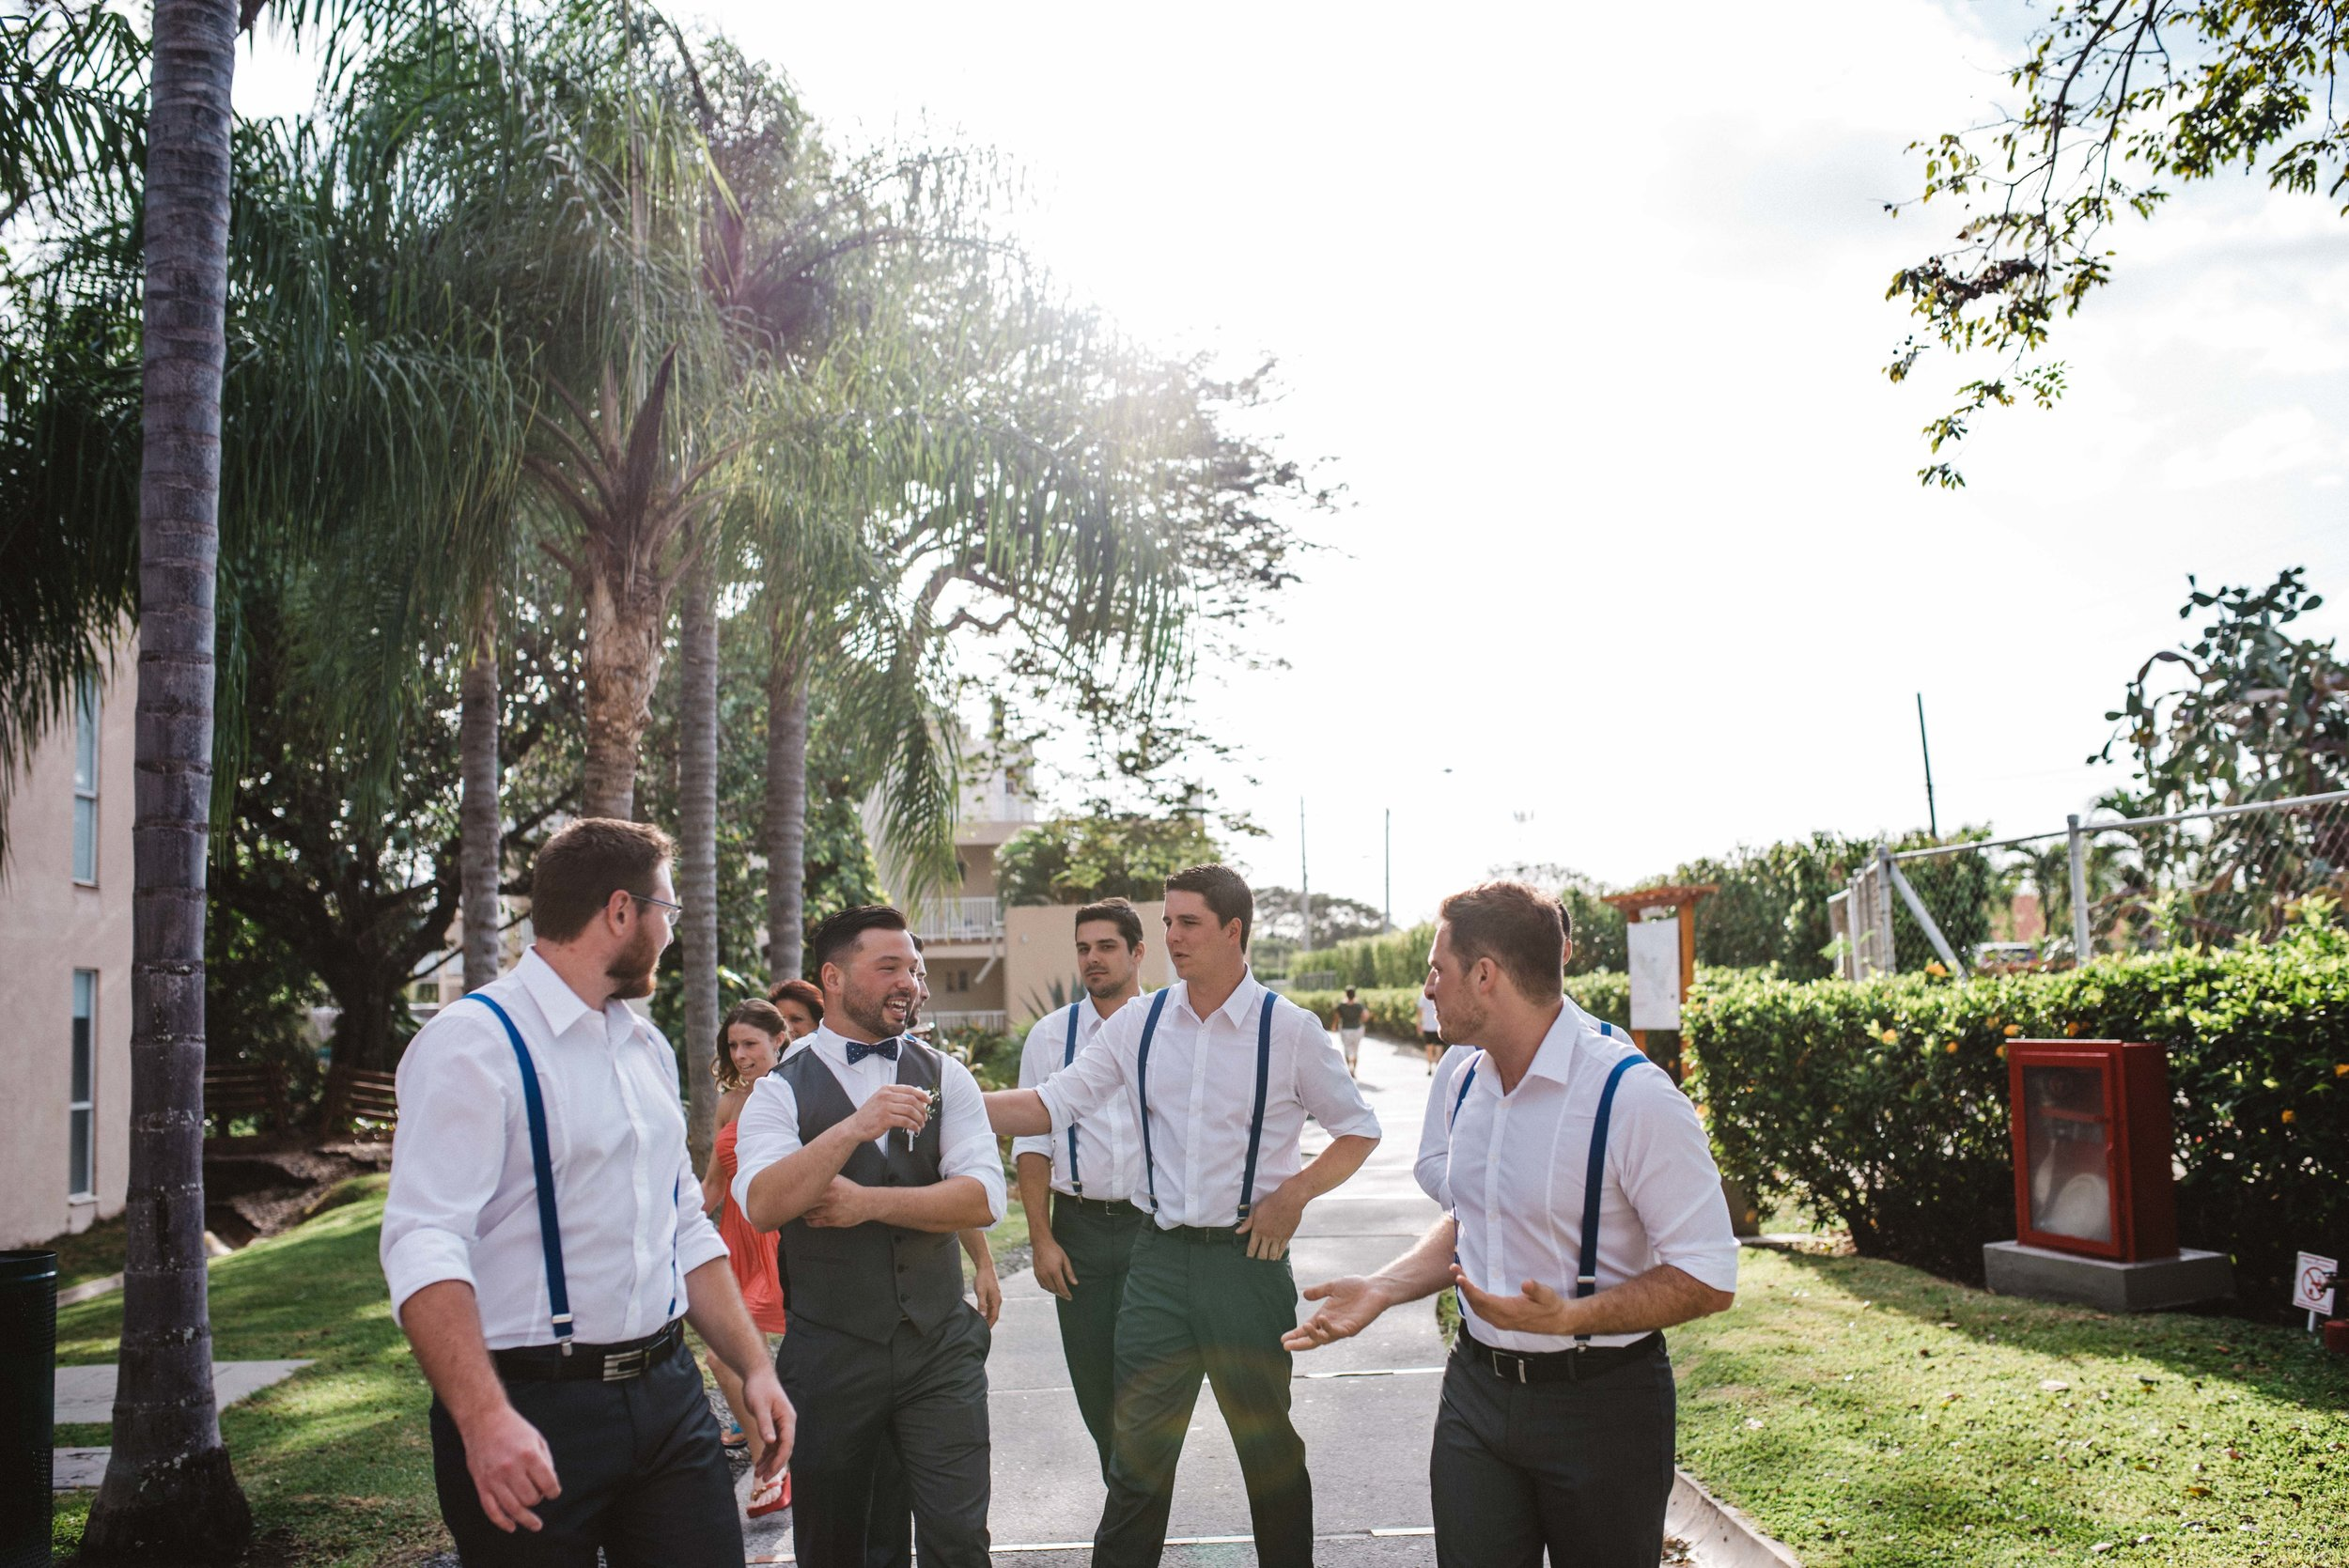 panama_wedding_destination_photographer_mariage (53).JPG